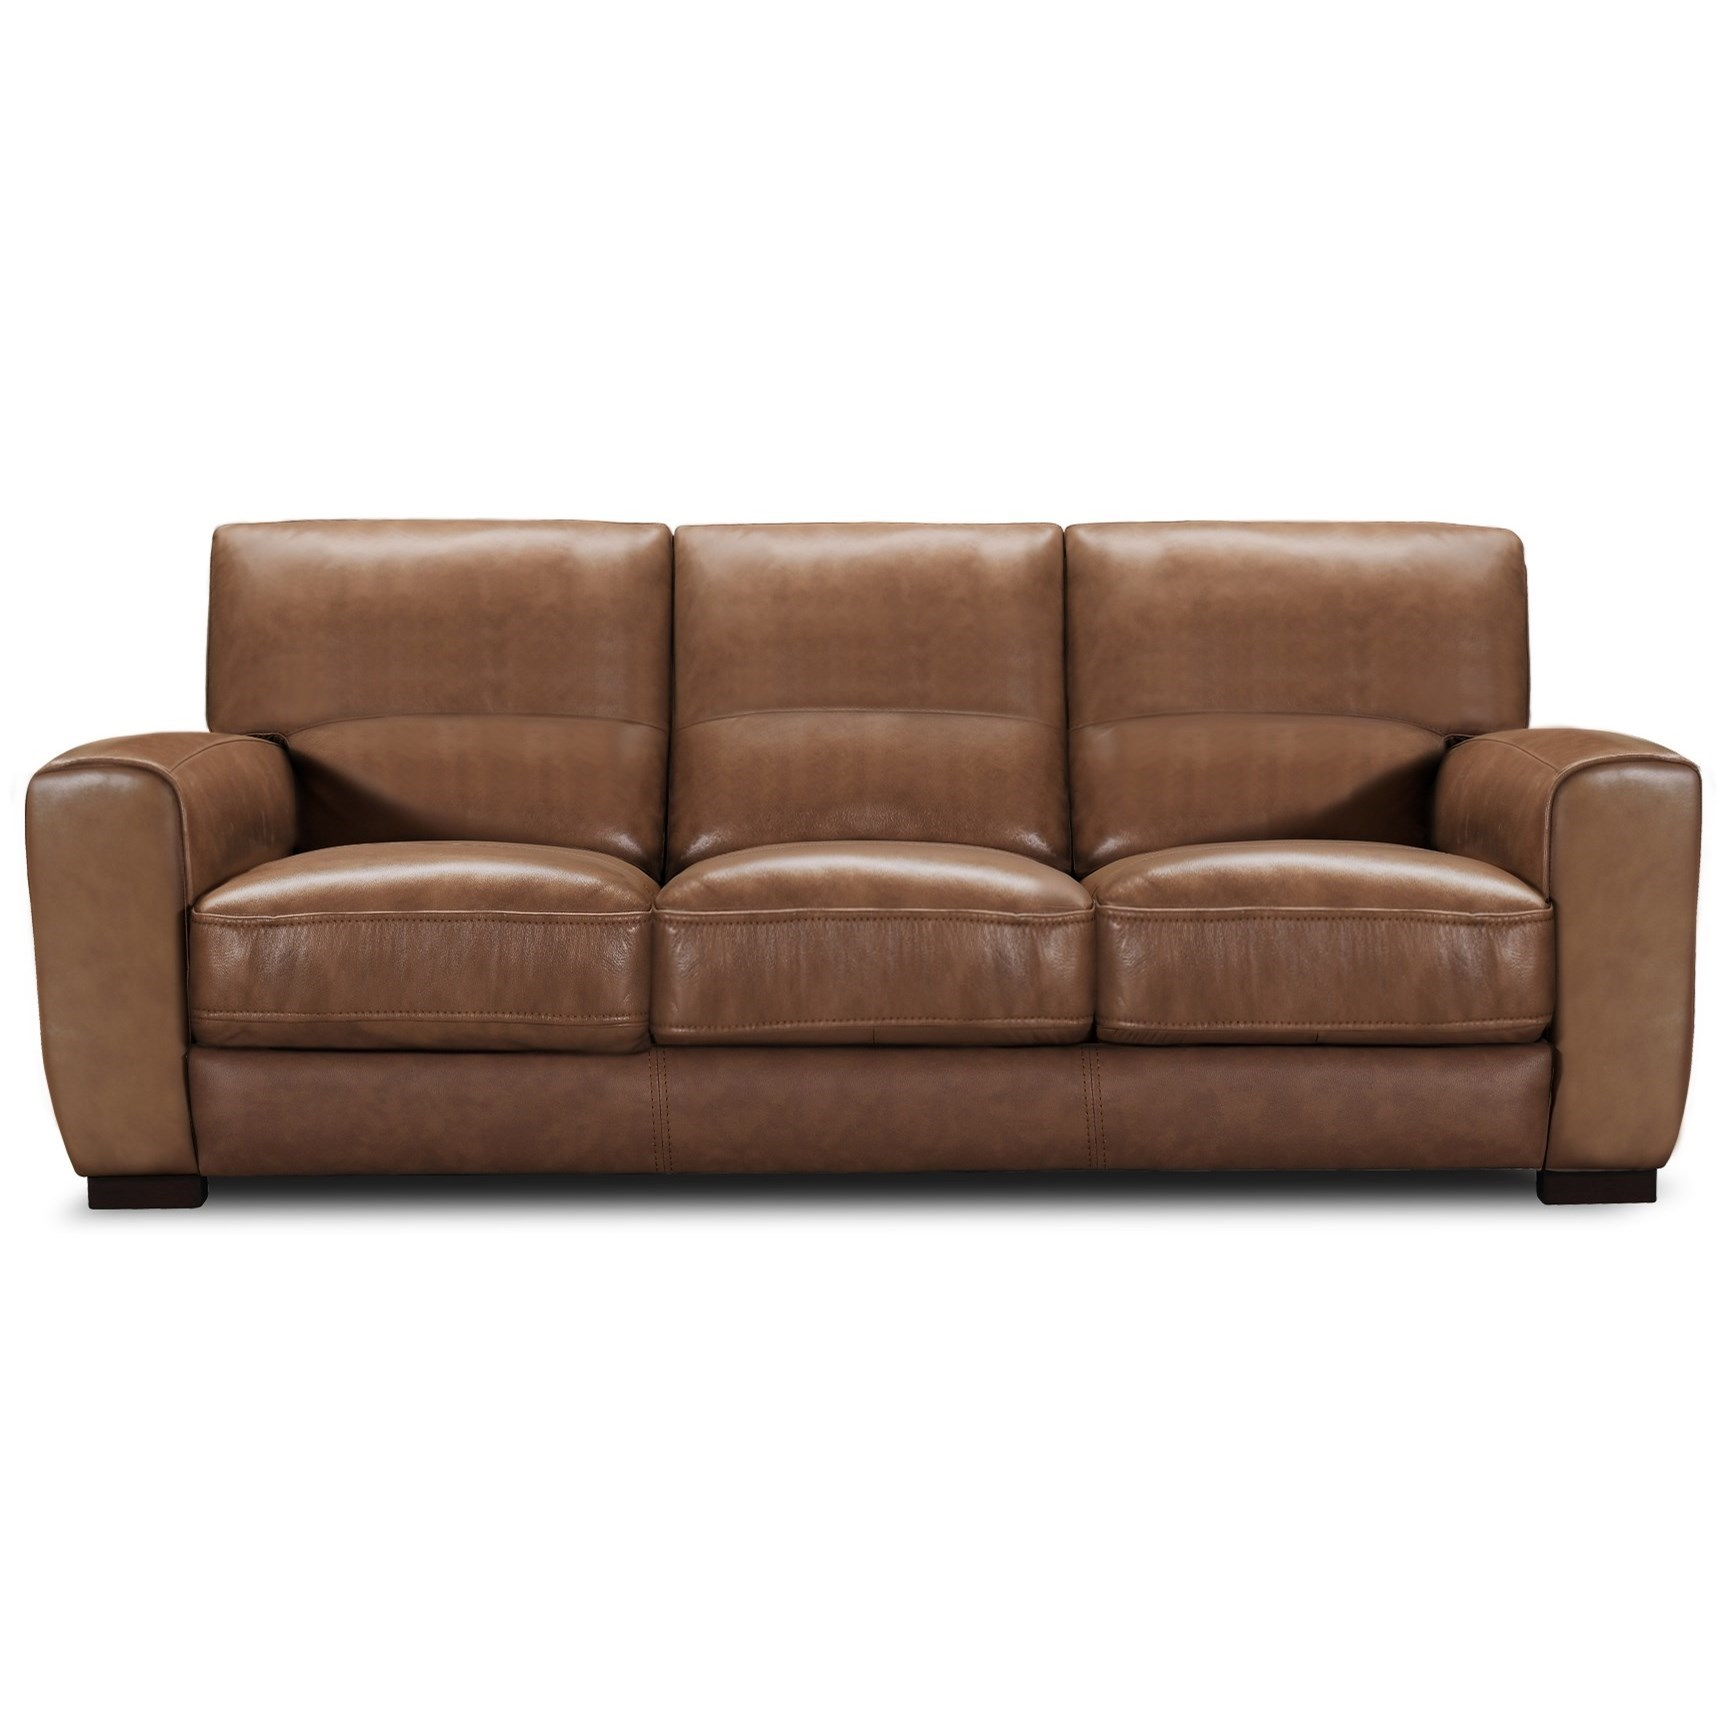 31366 Sofa by Violino at Furniture Superstore - Rochester, MN